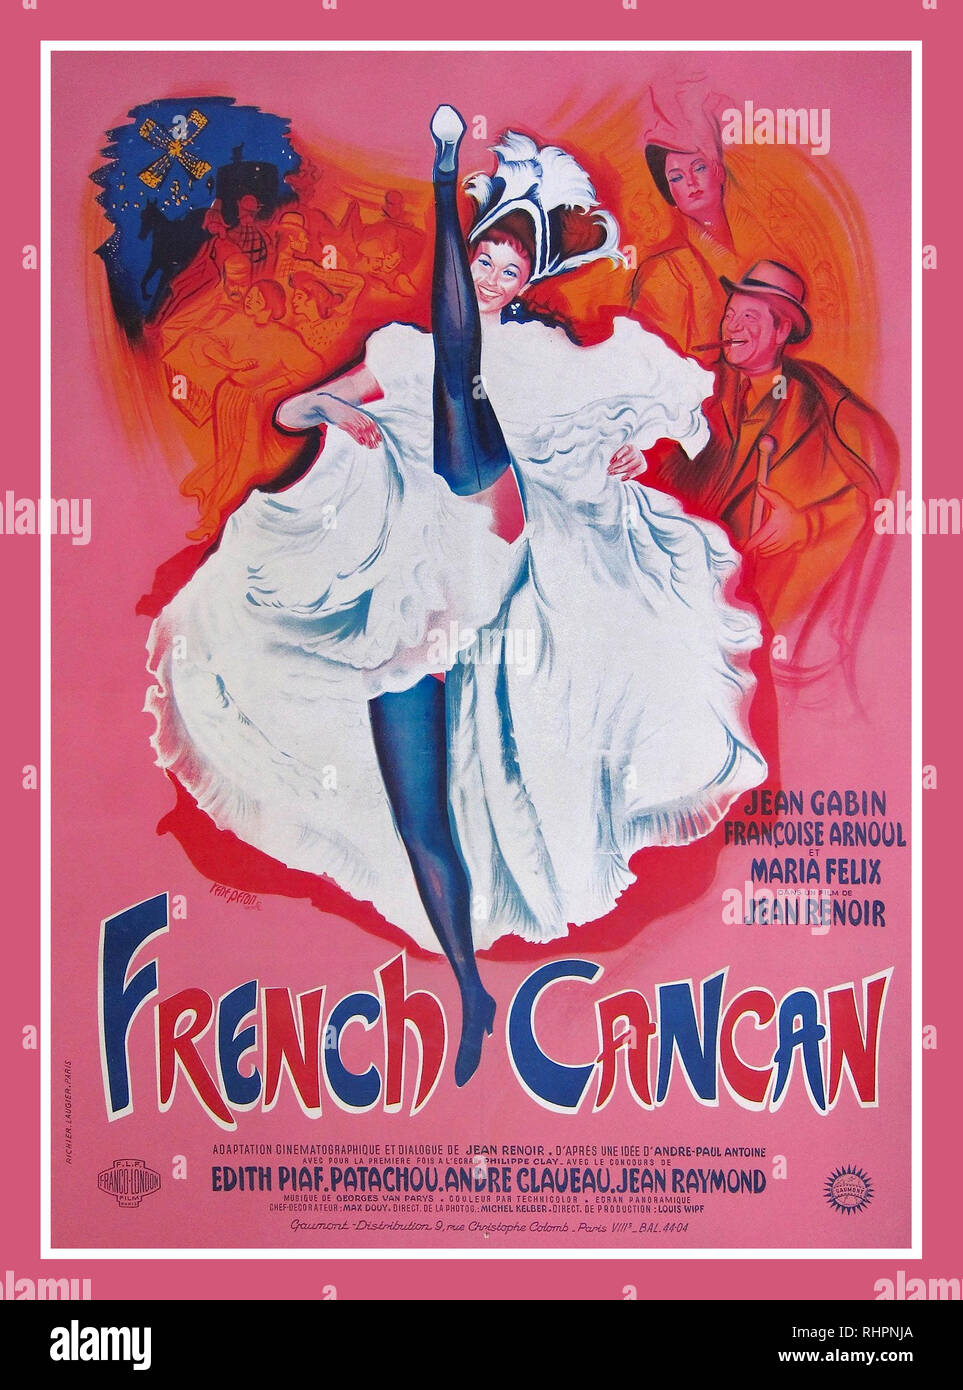 Vintage Movie Film Musical Poster 'French Cancan' is a 1955 French musical film written and directed by Jean Renoir and starring Jean Gabin and Francoise Arnoul. The Musical Movie is a homage to the Parisian café-concert of the 19th century with its popular singers and dancers. Visually, the film evokes the paintings of Edgar Degas and the Impressionists, including his own father, Pierre-Auguste Renoir. It also marked his return to France and to French cinema after an exile that began in 1940 at the Nazi Occupation of France - Stock Image